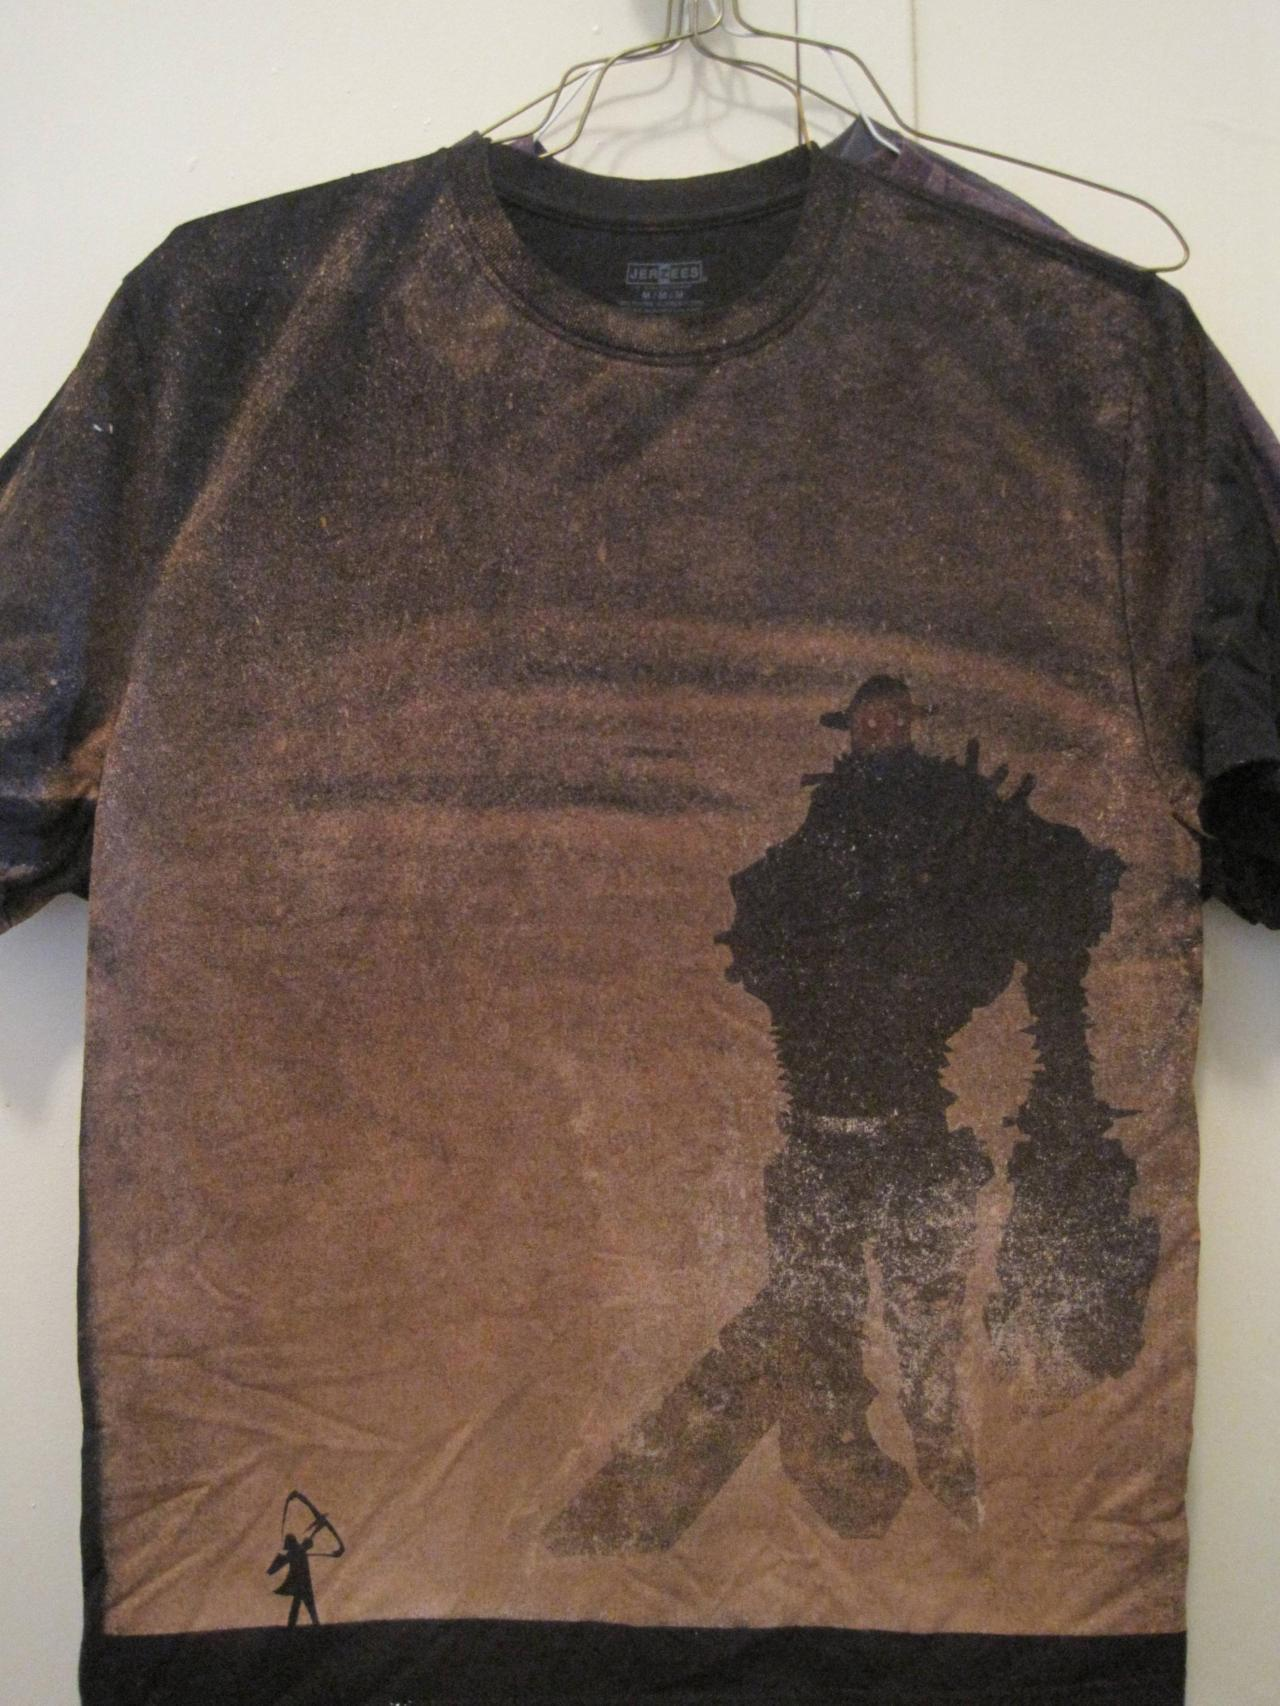 geeksngamers:  Awesome bleached shirt design by kdub1193 (via reddit)